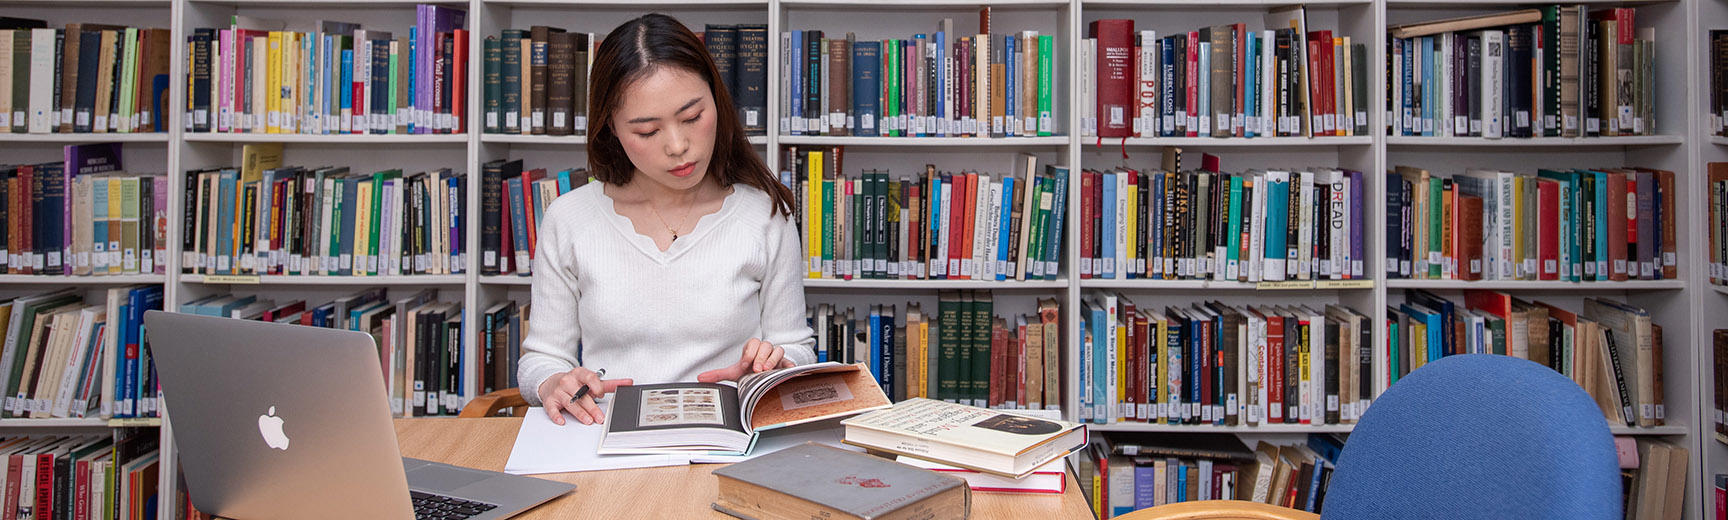 A student sits at a table - they look at a book and have an open laptop - behind is a bookshelf covering the whole wall